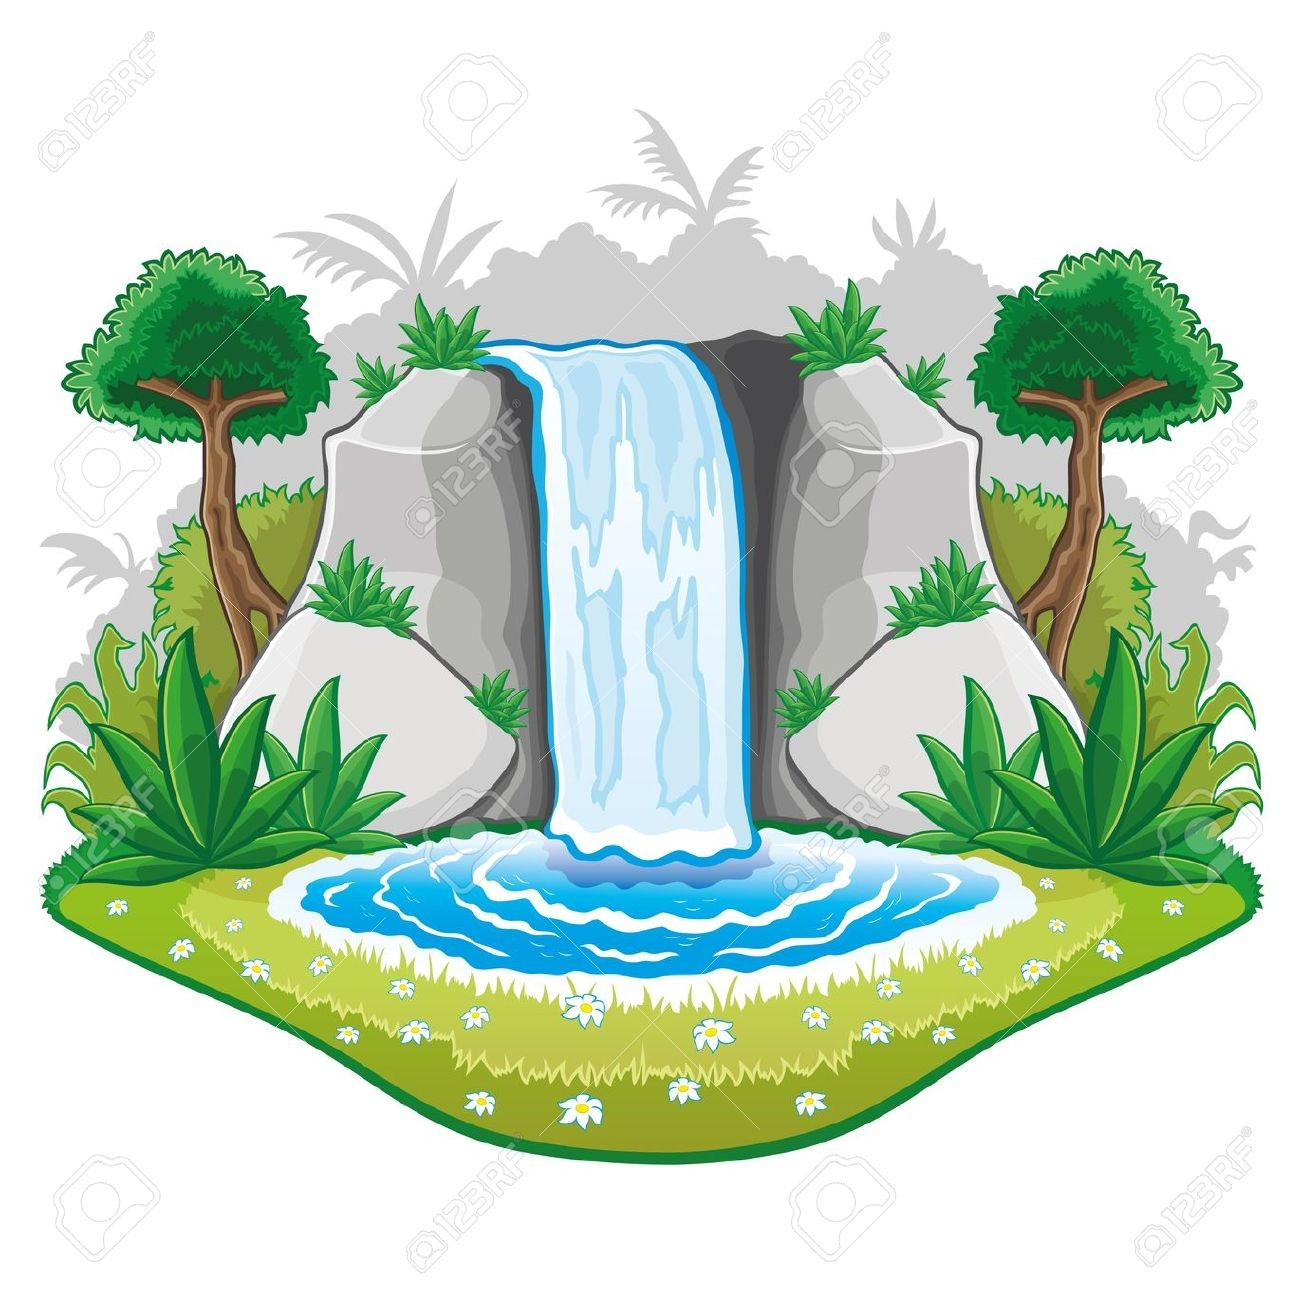 Waterfall clipart #16, Download drawings